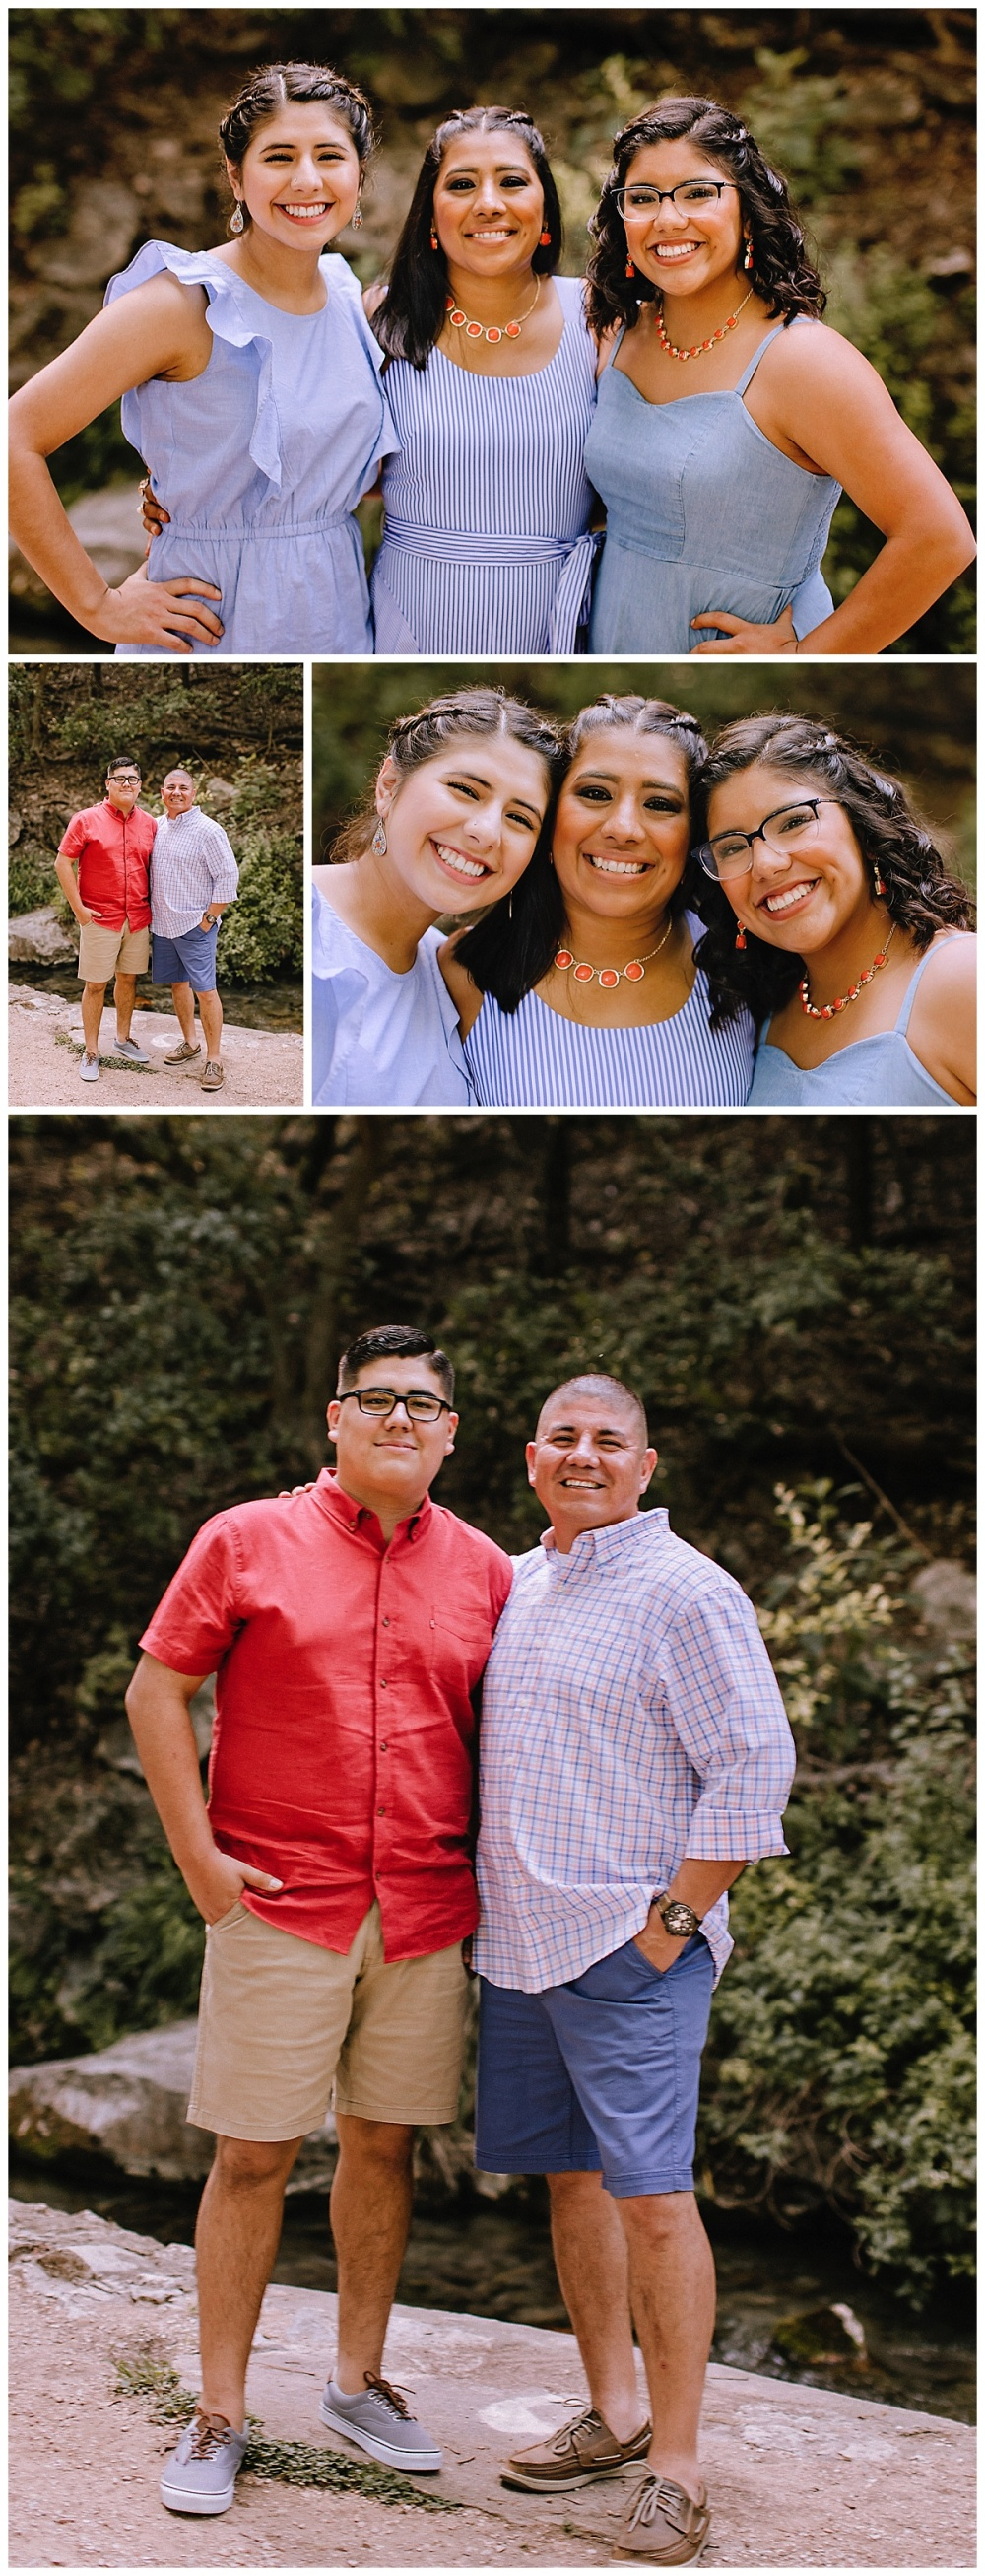 Carly-Barton-Photography-Family-Session-Landa-Park-New-Braunfels-Texas-Benavides_0002.jpg